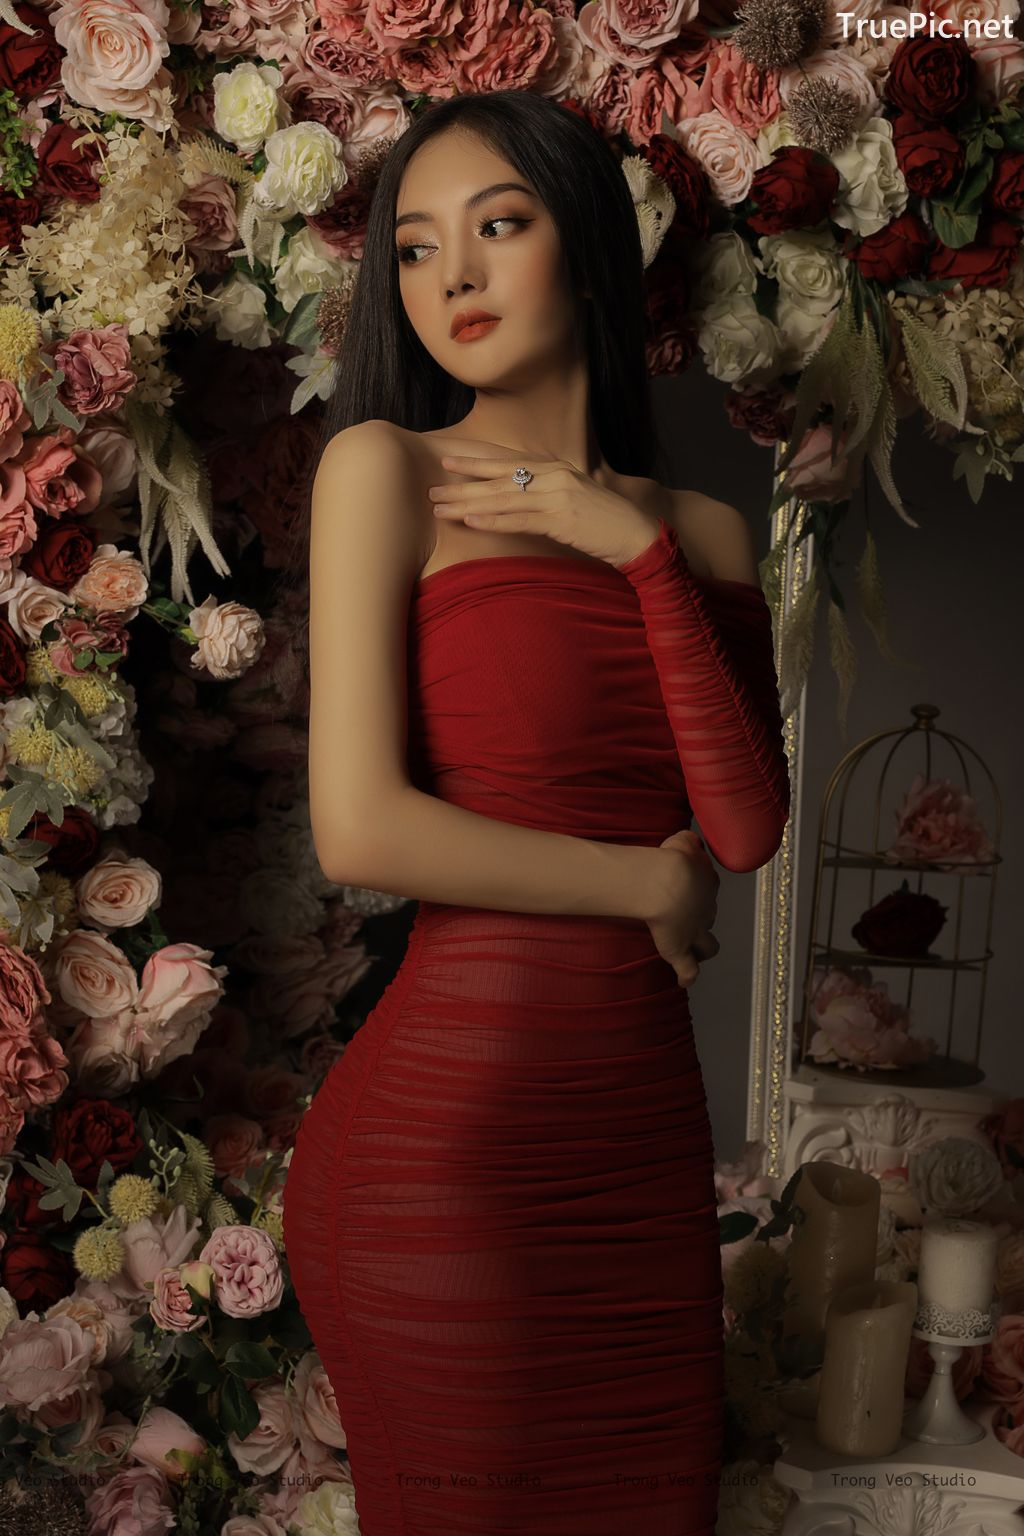 Image Vietnamese Model - Beautiful Girl and Flowers - TruePic.net - Picture-4